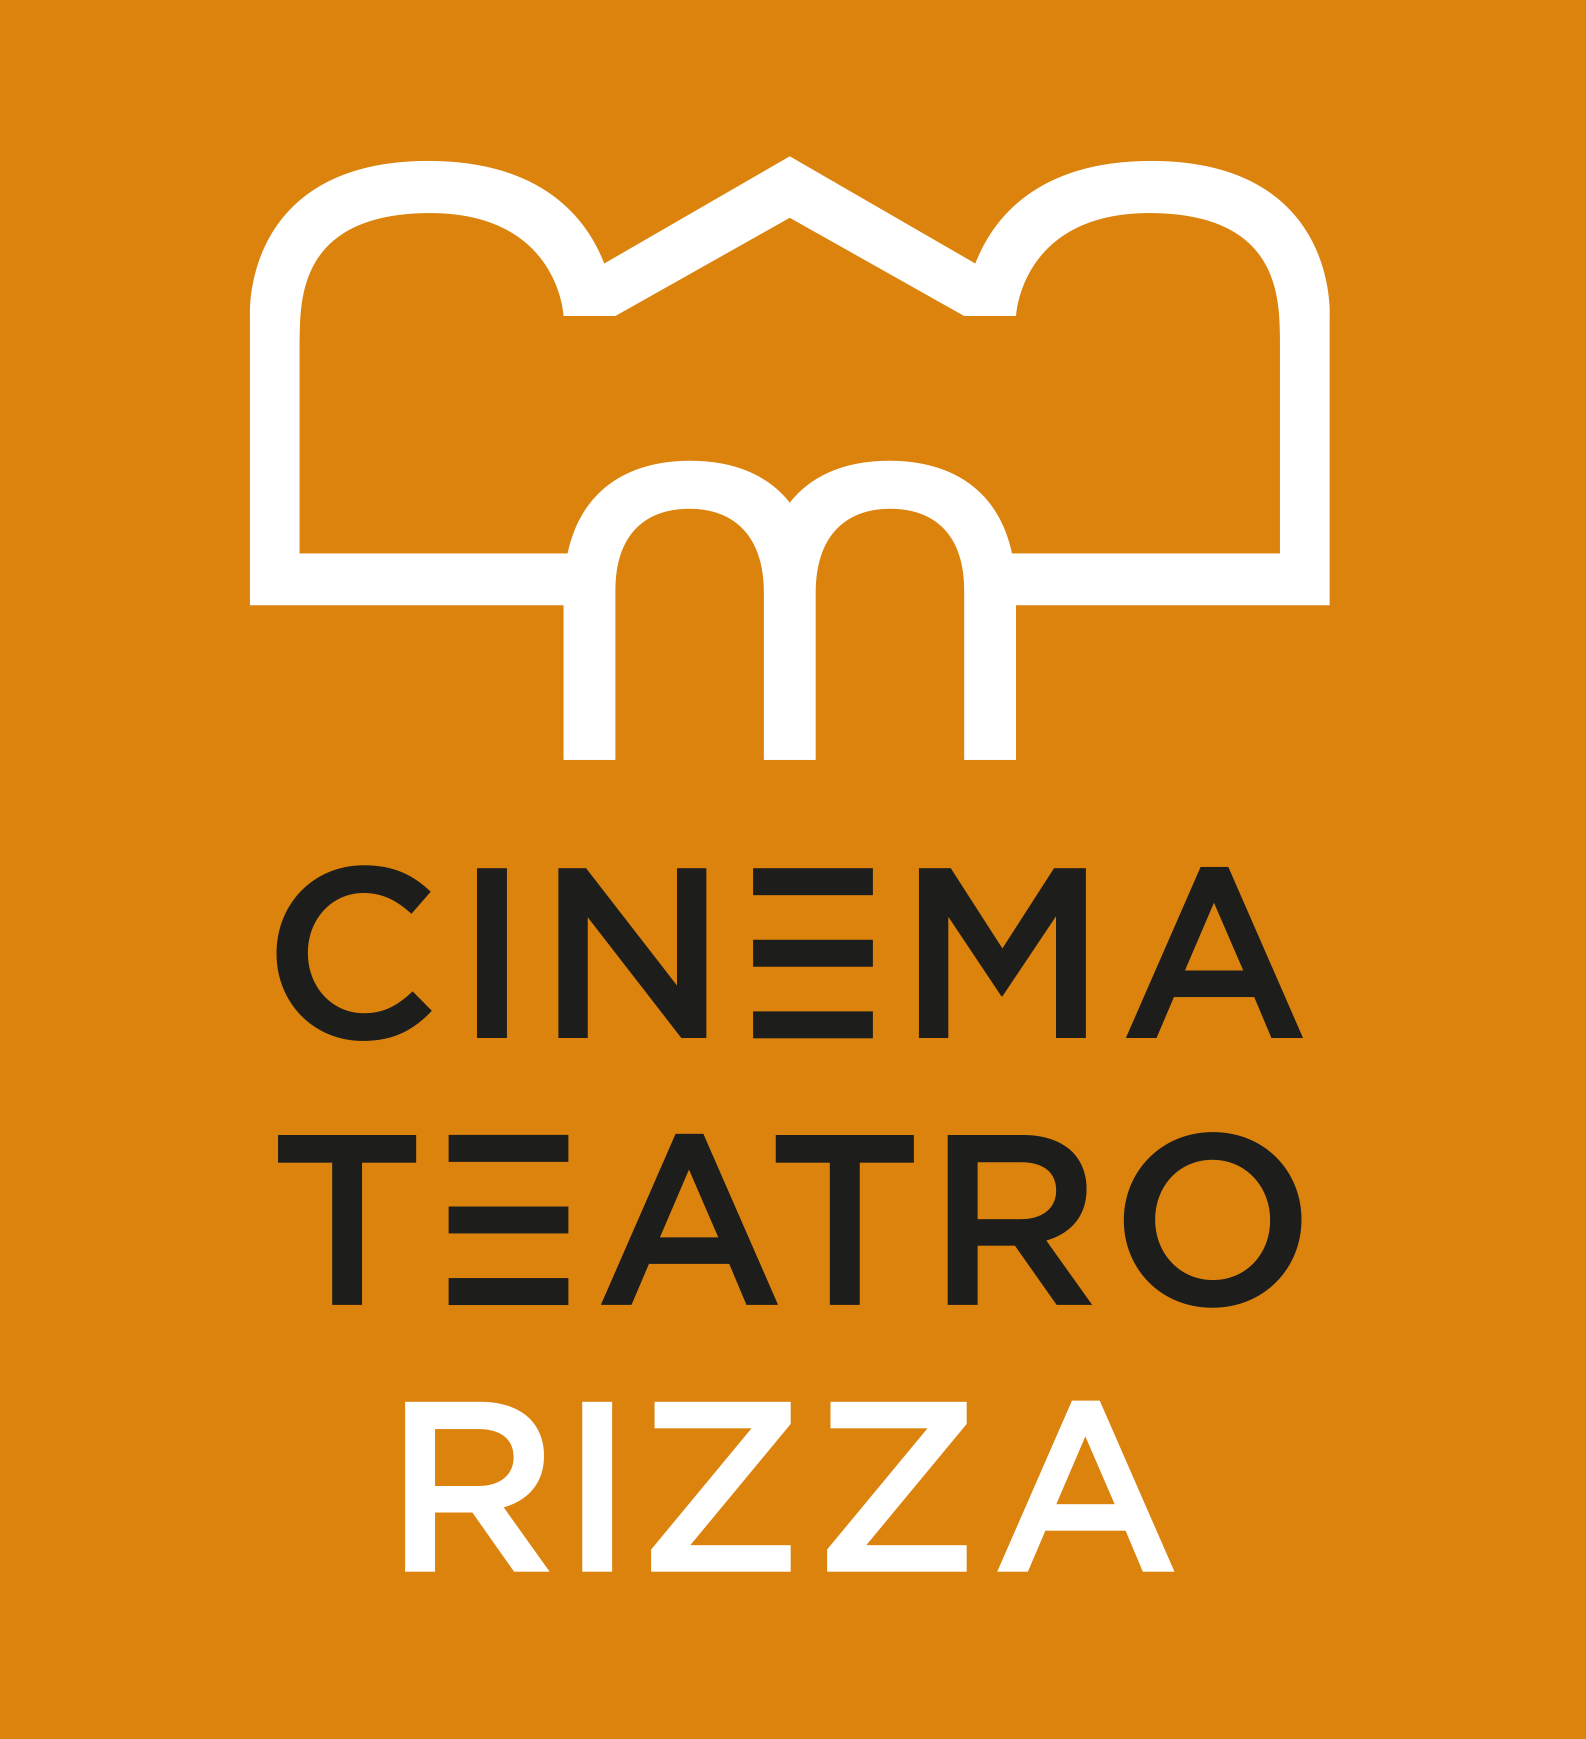 Cinema Teatro Rizza